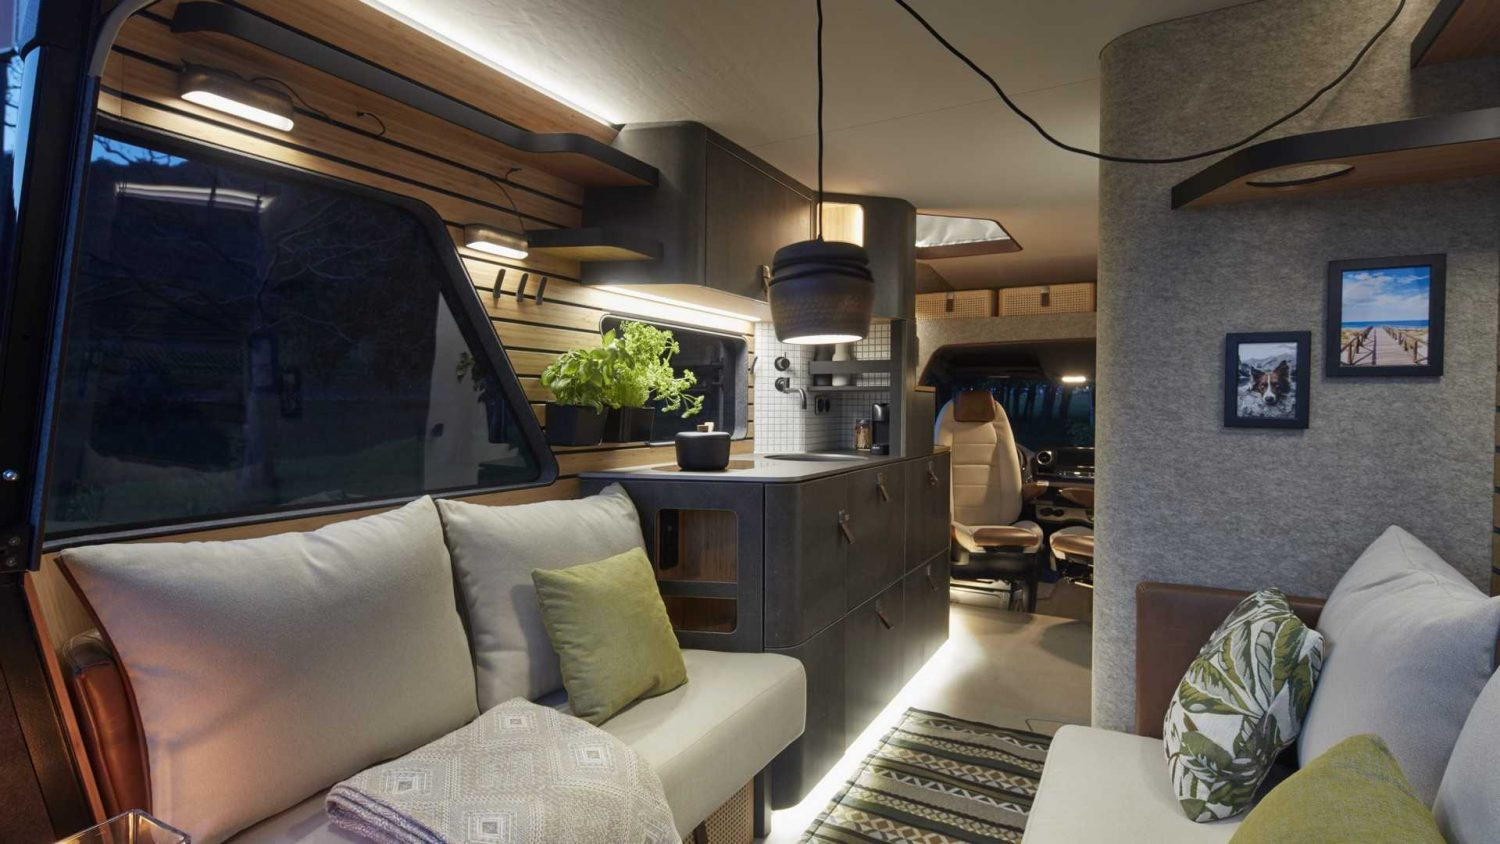 Hymer's Vision Venture Sprinter Might Have The Coolest Interior Ever